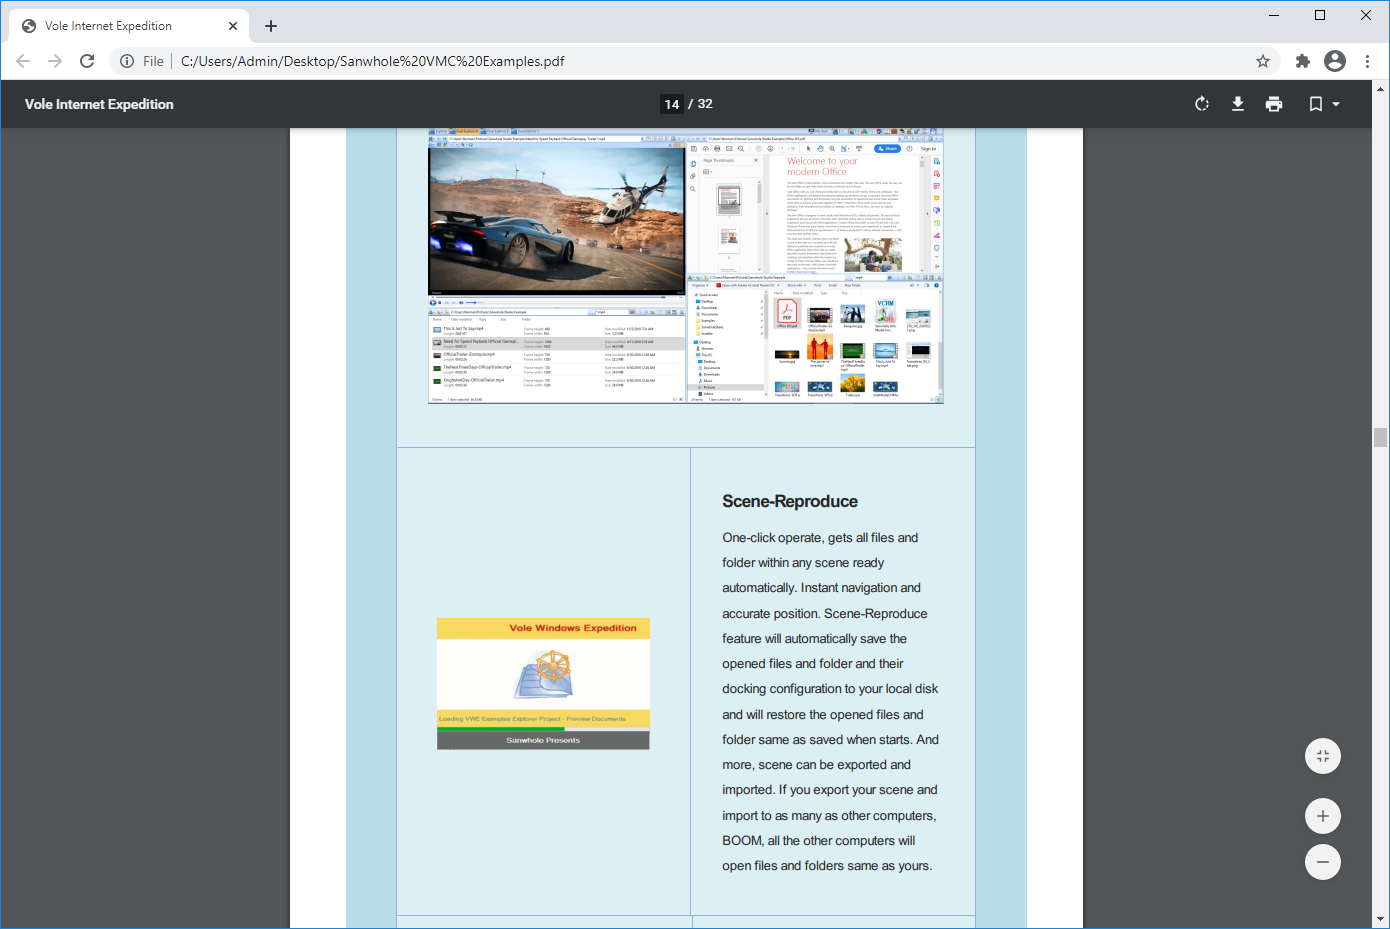 Vole PDF Creator Professional Edition, Business & Finance Software, PDF Conversion Software Screenshot